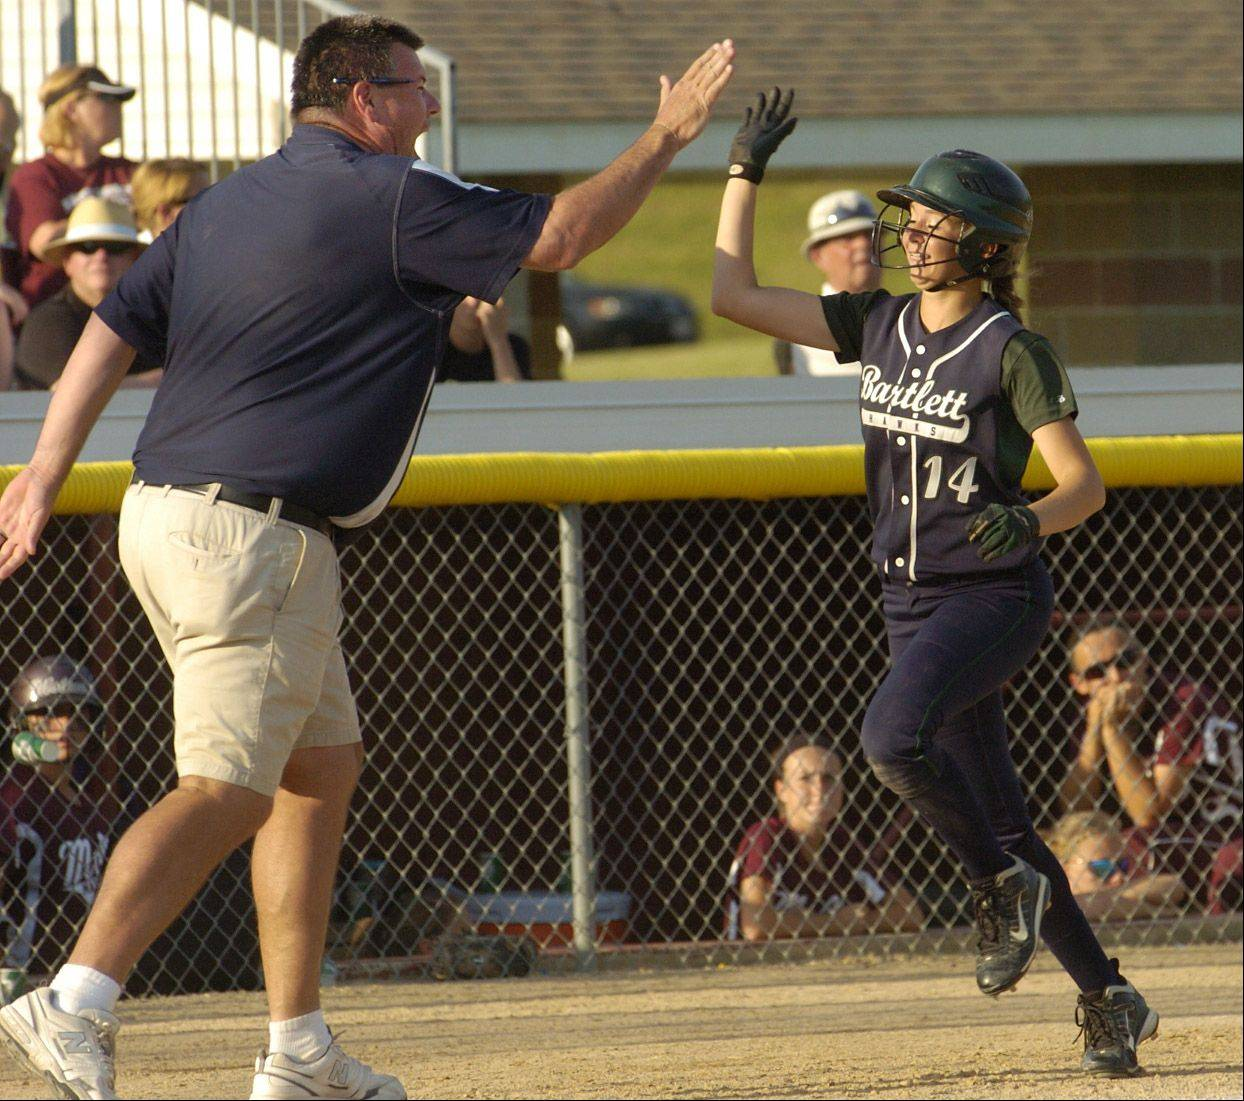 Alex Morales is greeted by coach Jim Wolfsmith as she scores on Kayla Haberstich's home run in the 7th during dramatic come back win in the Class 4A state softball semifinal against Moline in East Peoria.